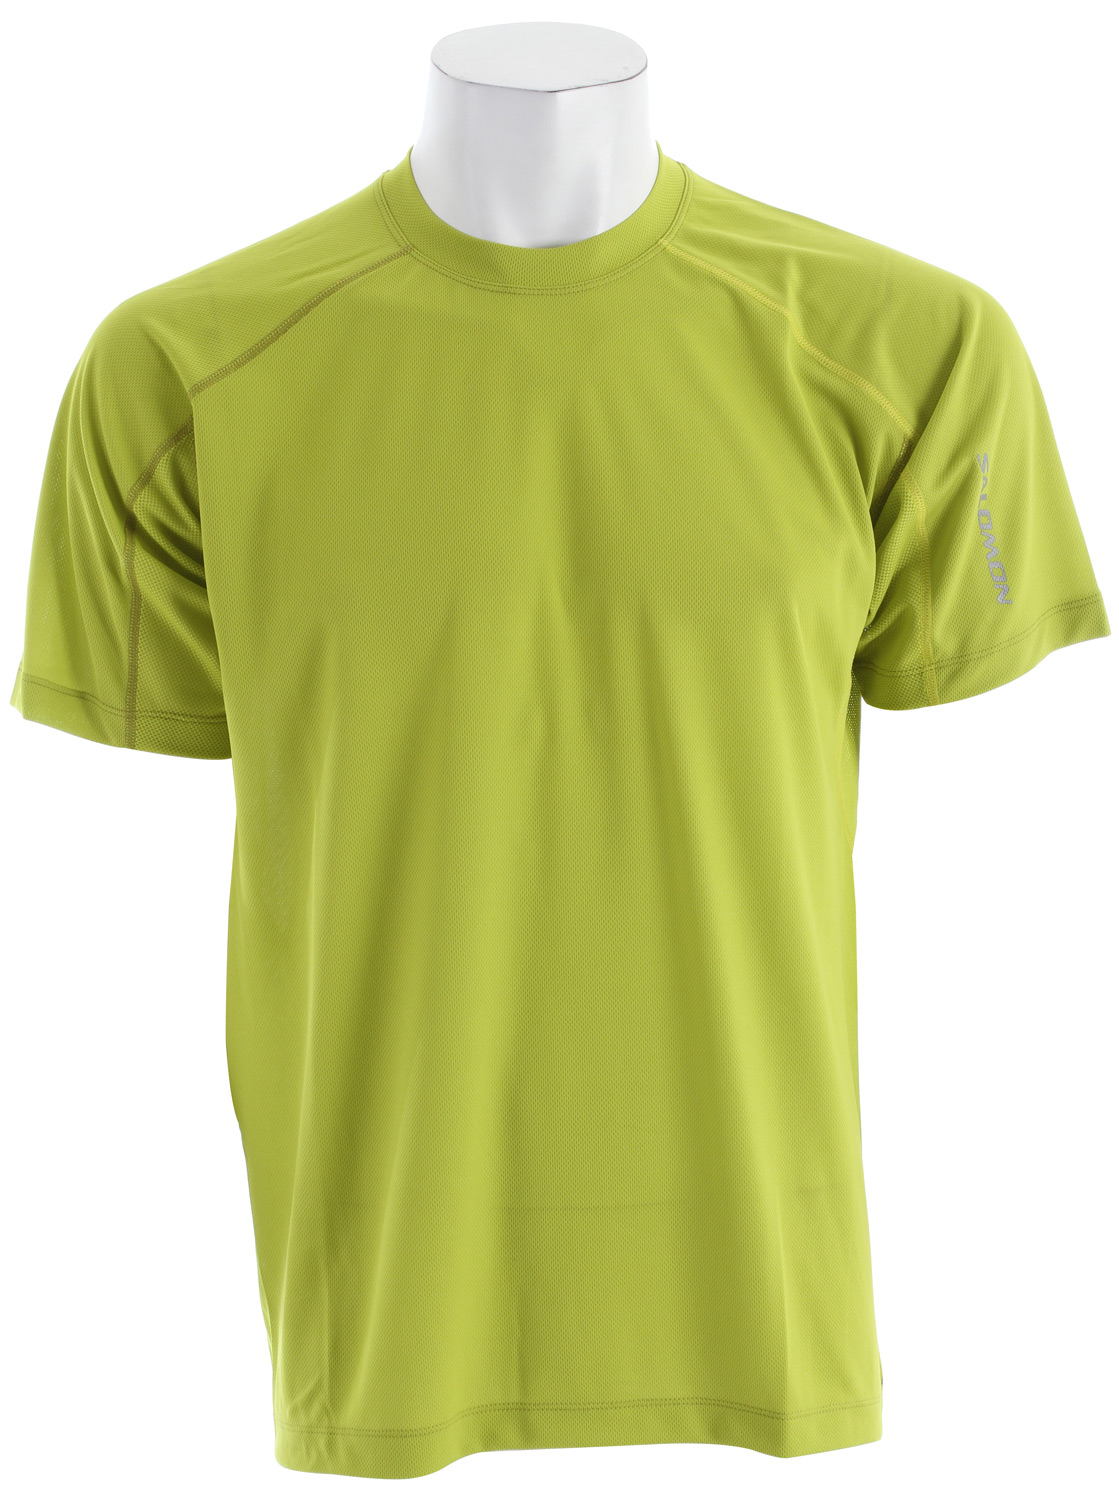 Fitness Relaxed fitting, versatile tee for running and outdoor sports with mesh pit vent panels, updated seam detailing and stash pocket.Key Features of the Salomon Trial IV T-Shirt: Smart Skin Actilite poly mock eylet Actilite stretch mesh Reflective branding front & back Stash pocket Flatlock seams Body: PES 100% Relax fit 120g - $22.95